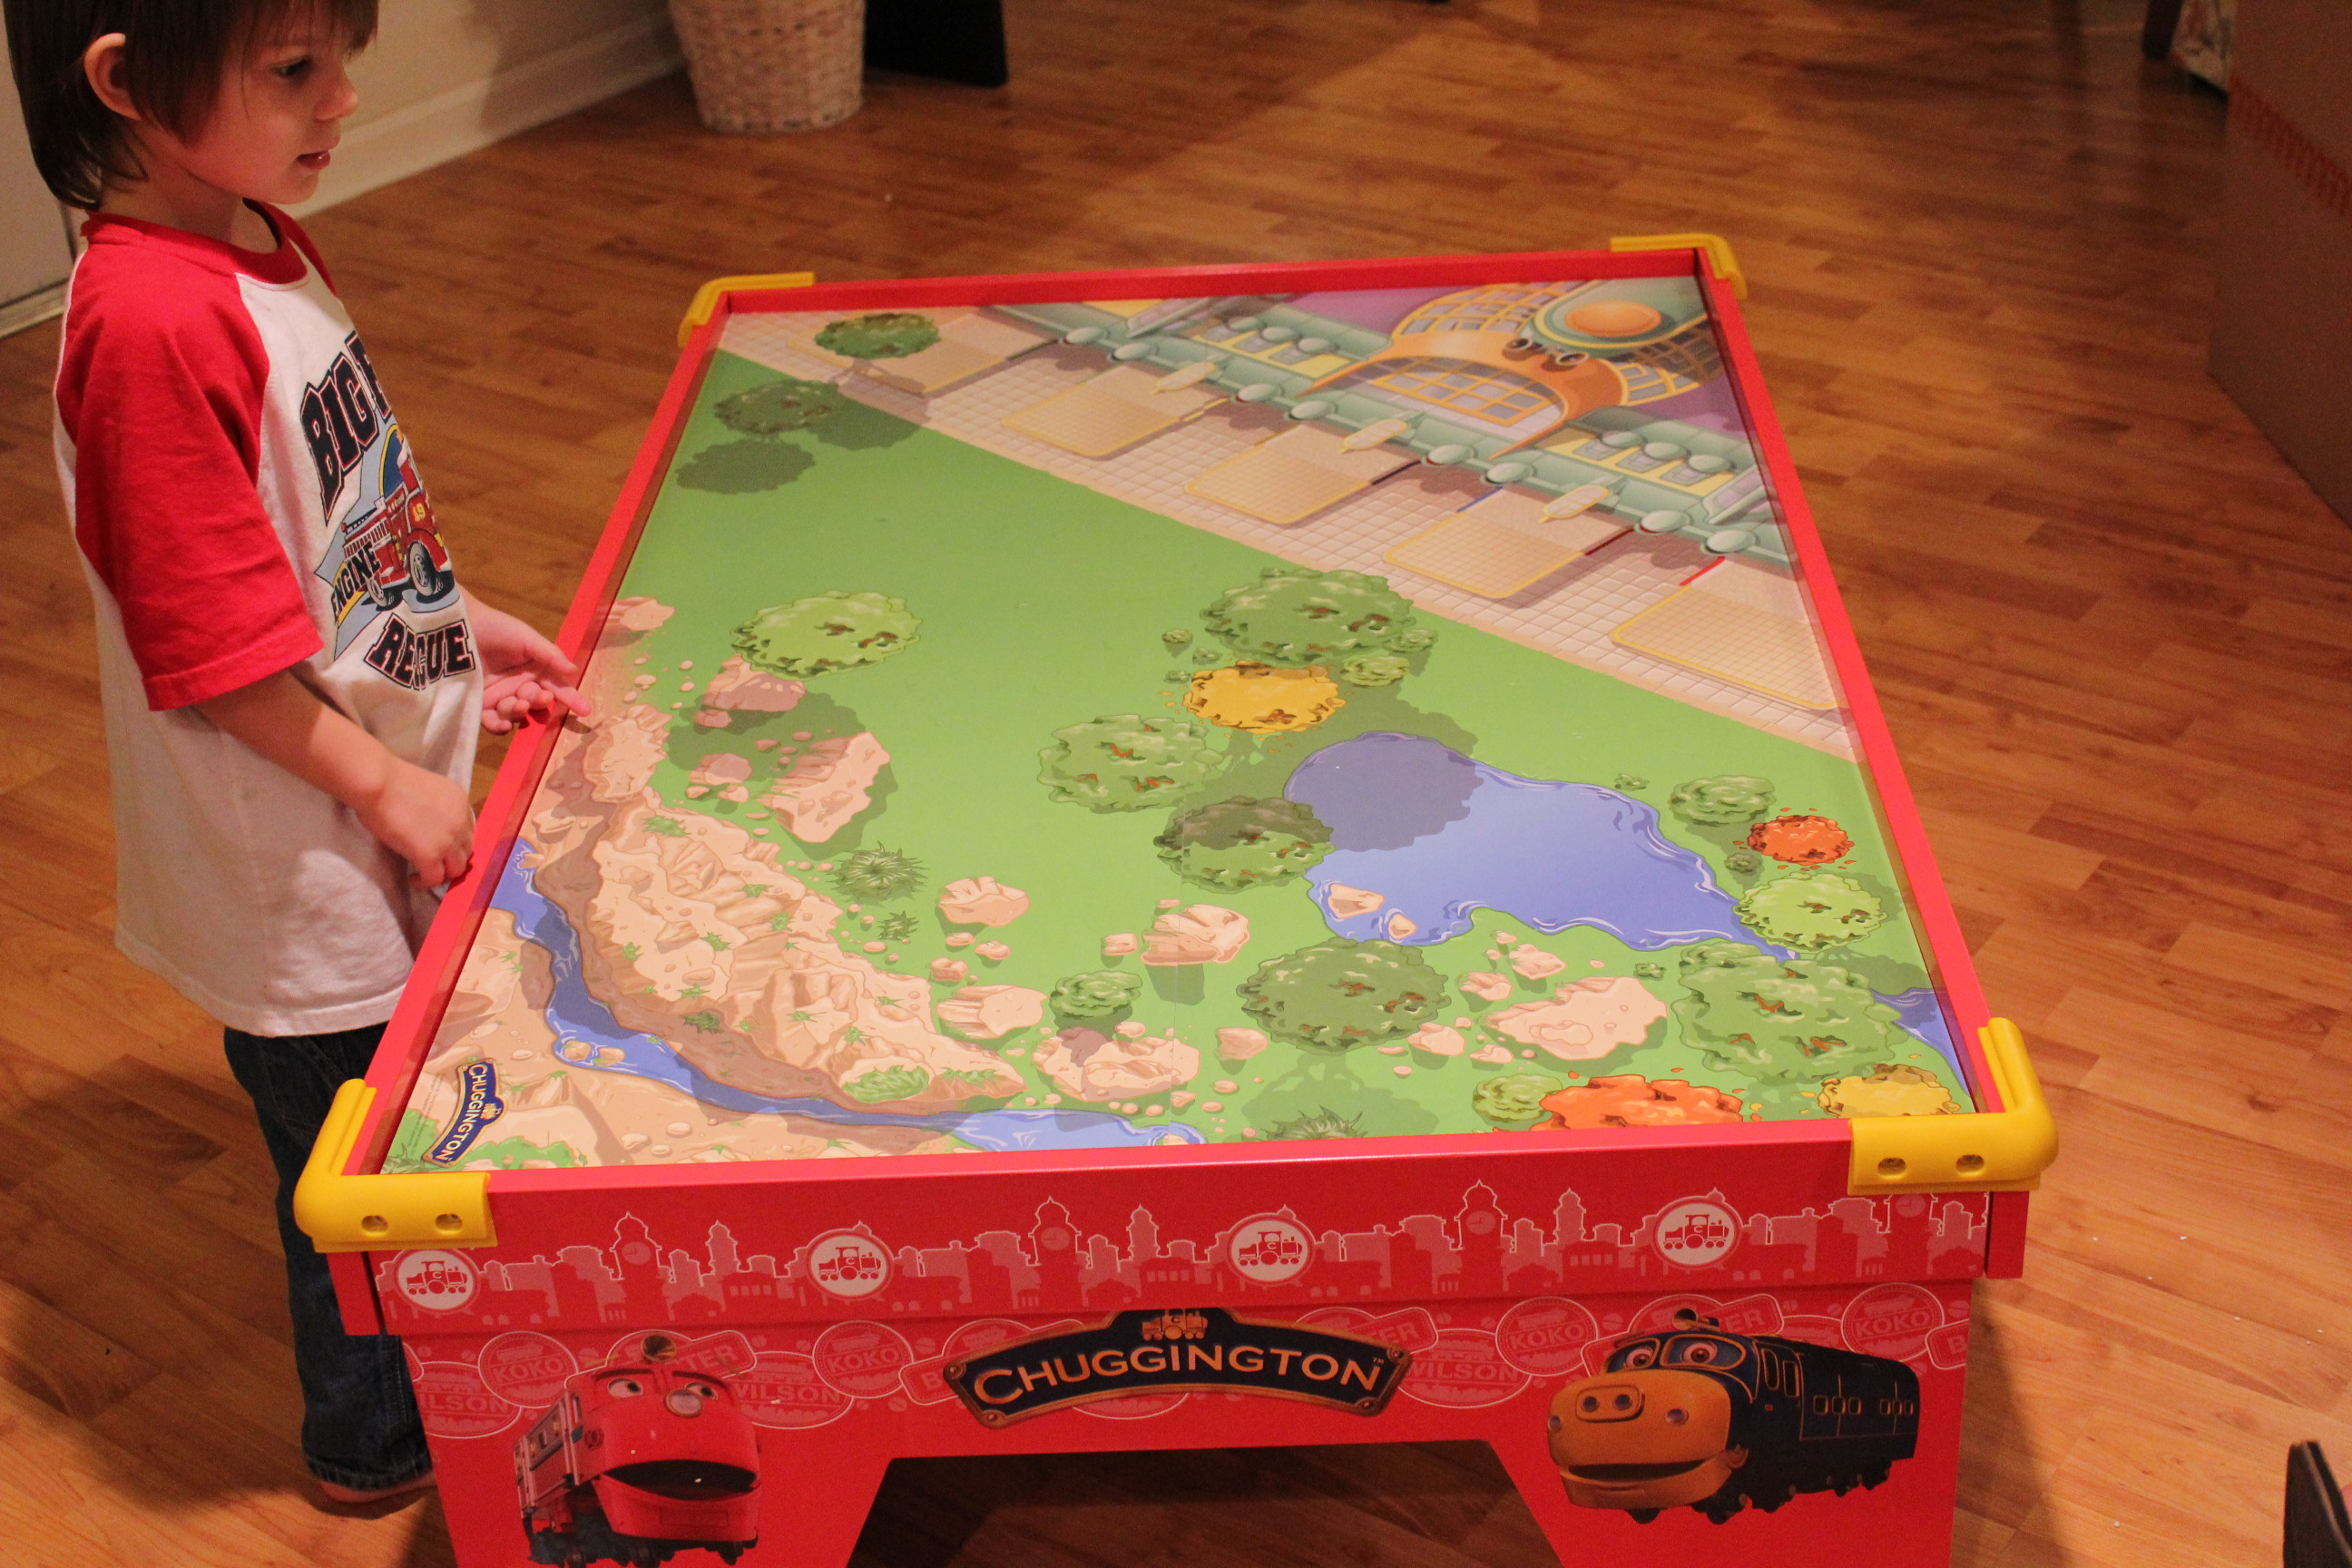 Chuggington Wooden Train Table | Simply Being Mommy